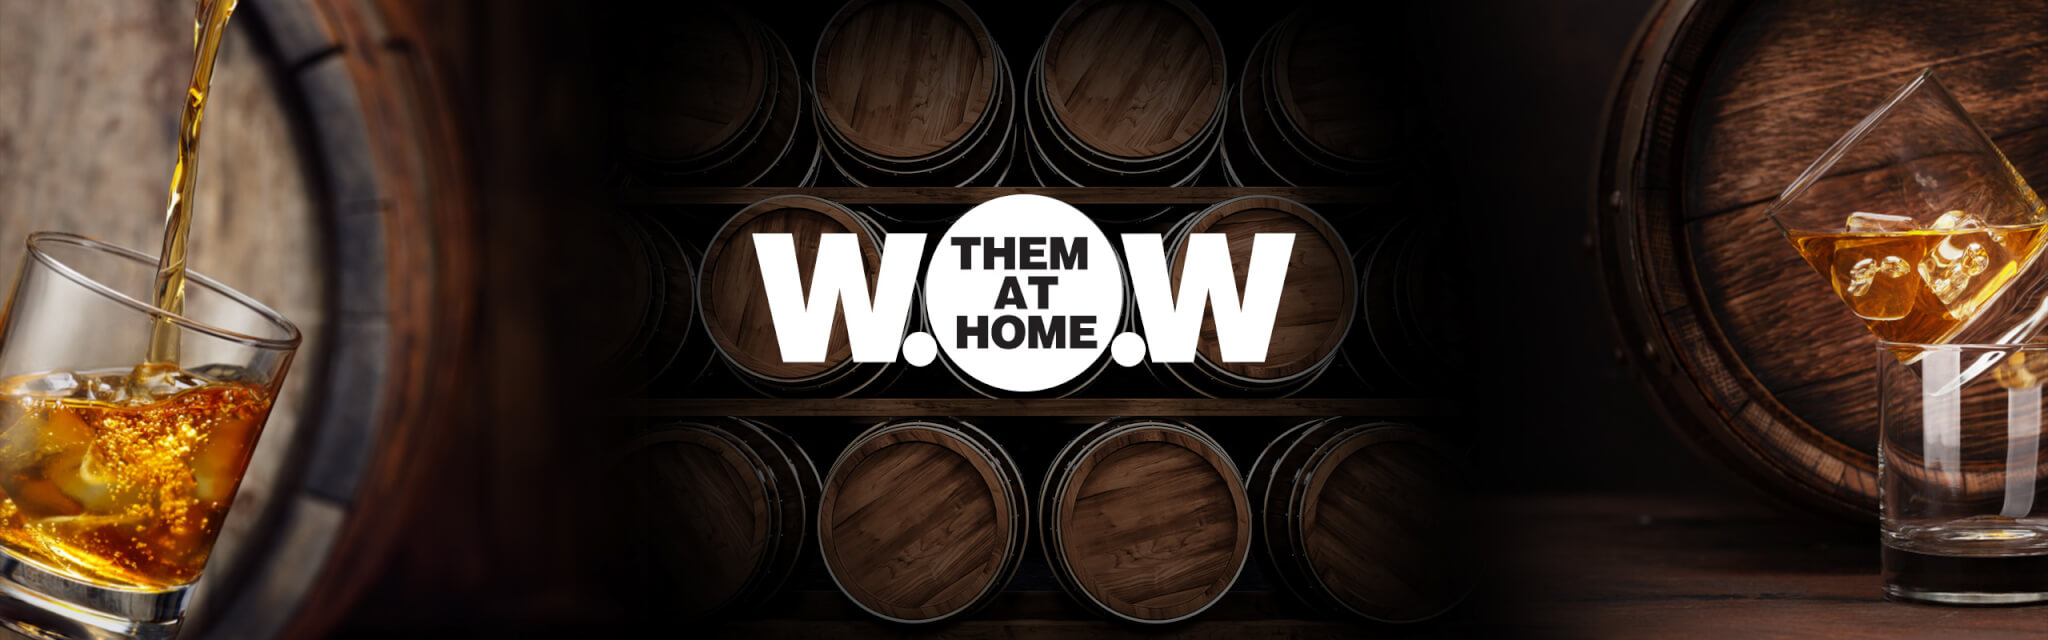 WOW THEM AT HOME - AUGUST 12